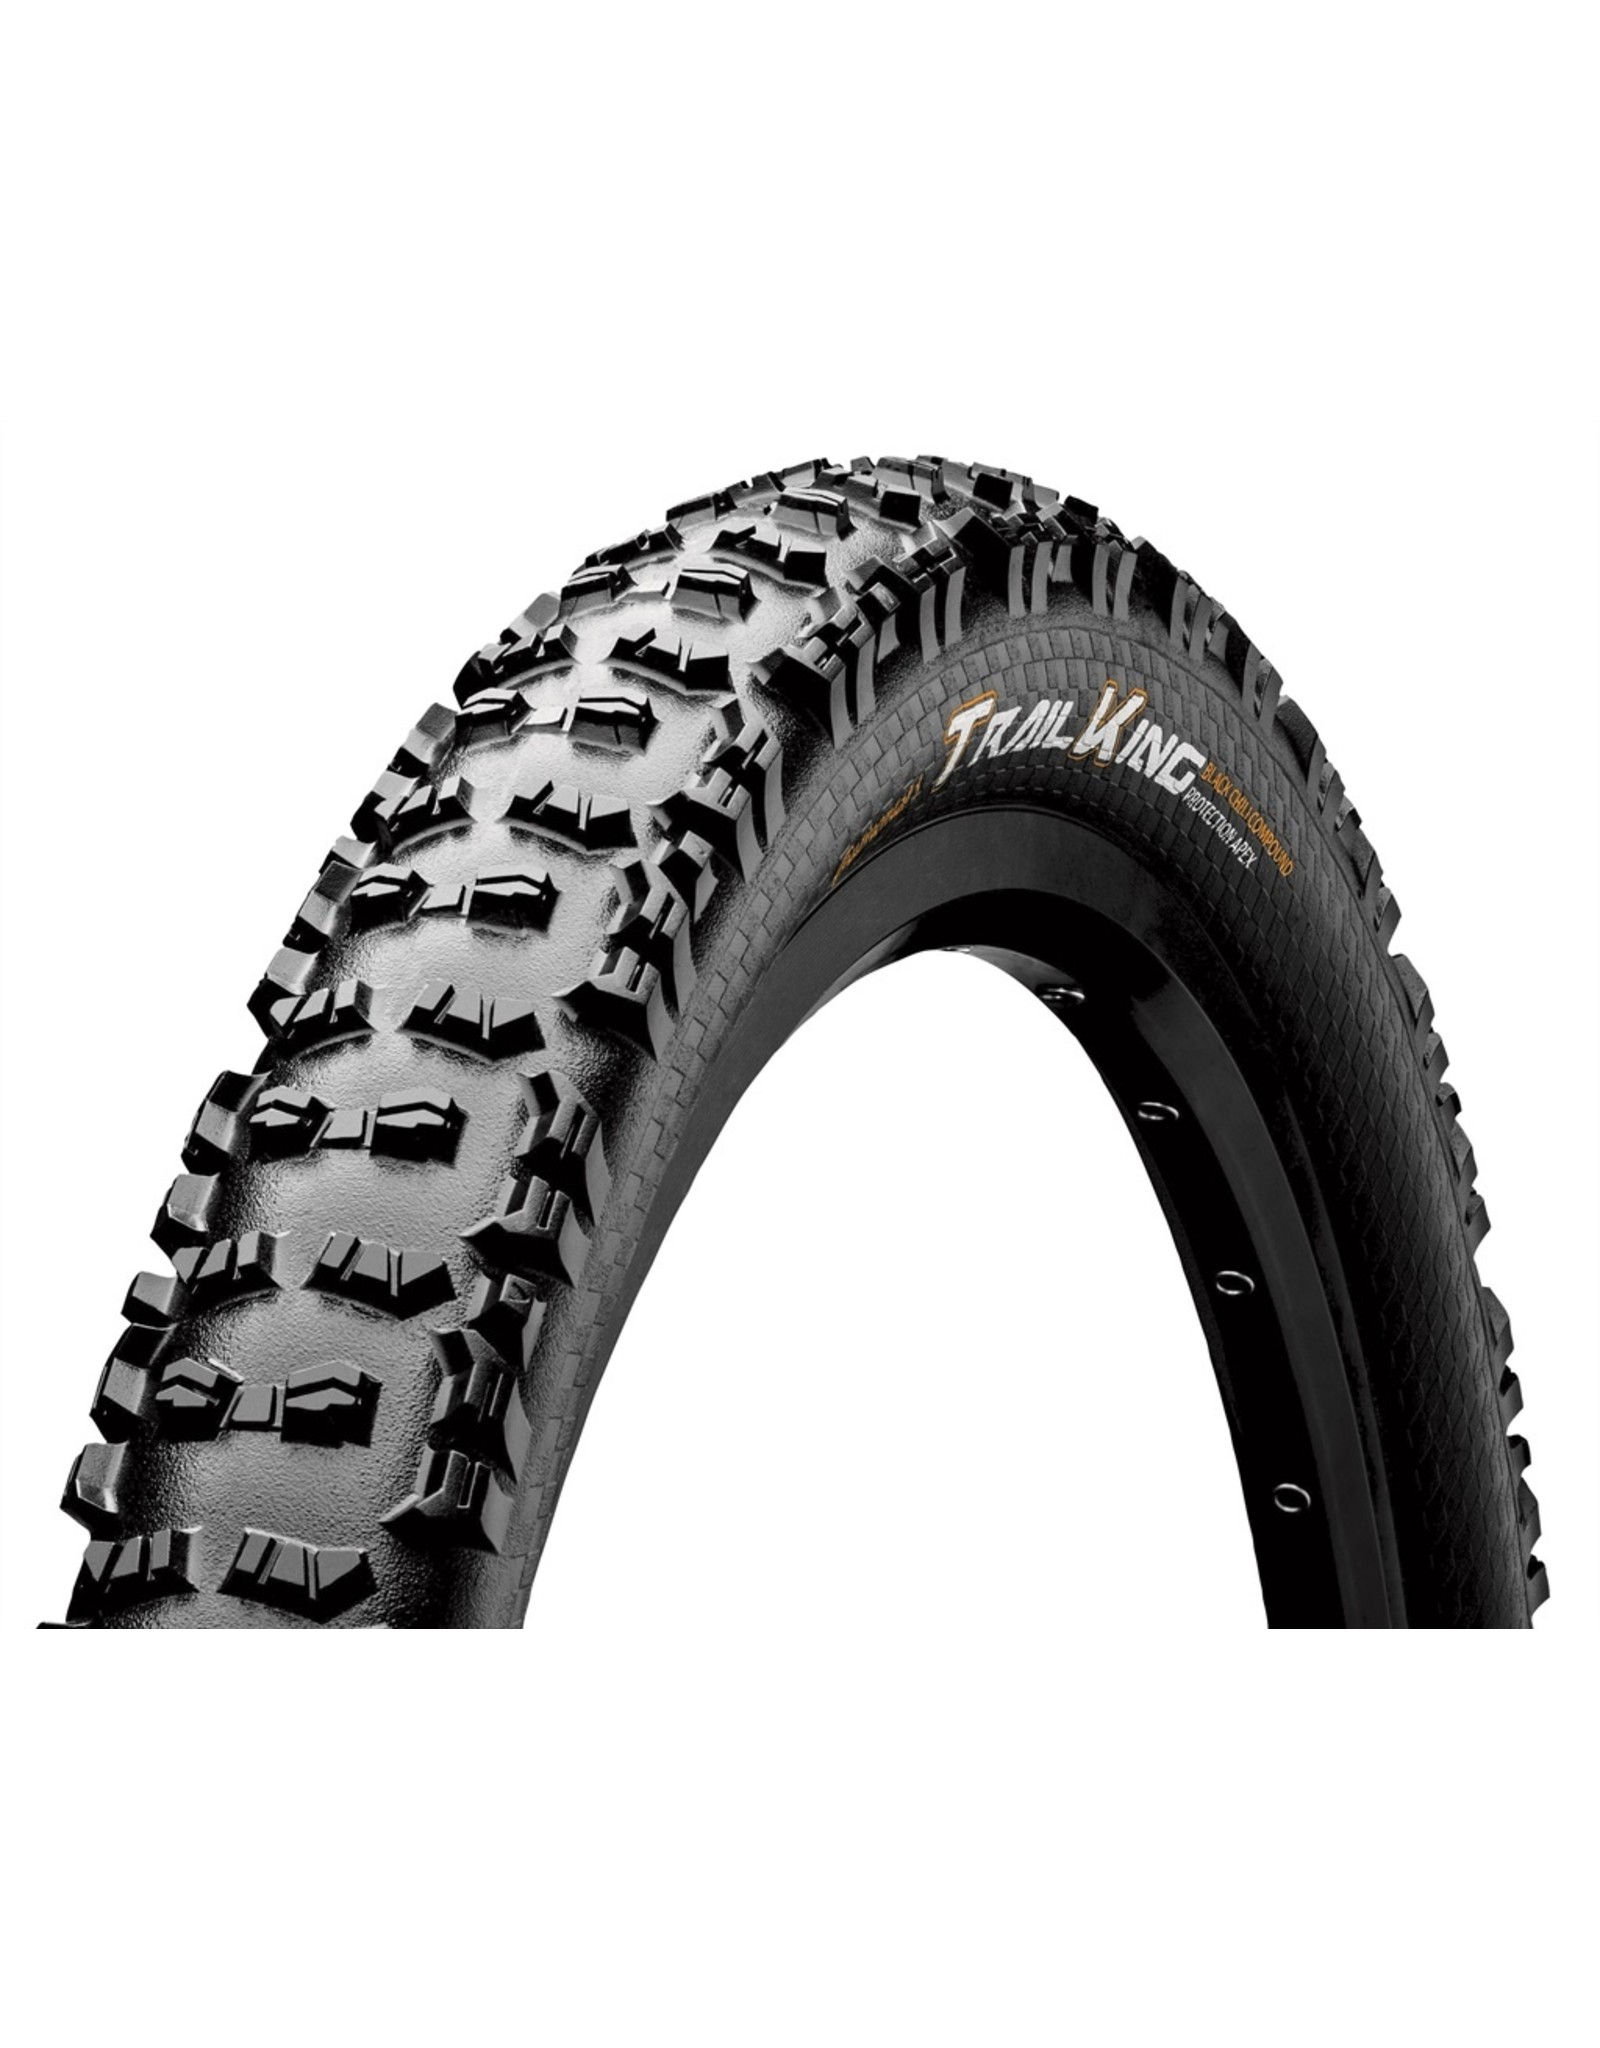 Continental Tires Trail King 29 x 2.2 Folding ProTection APEX + Black Chili